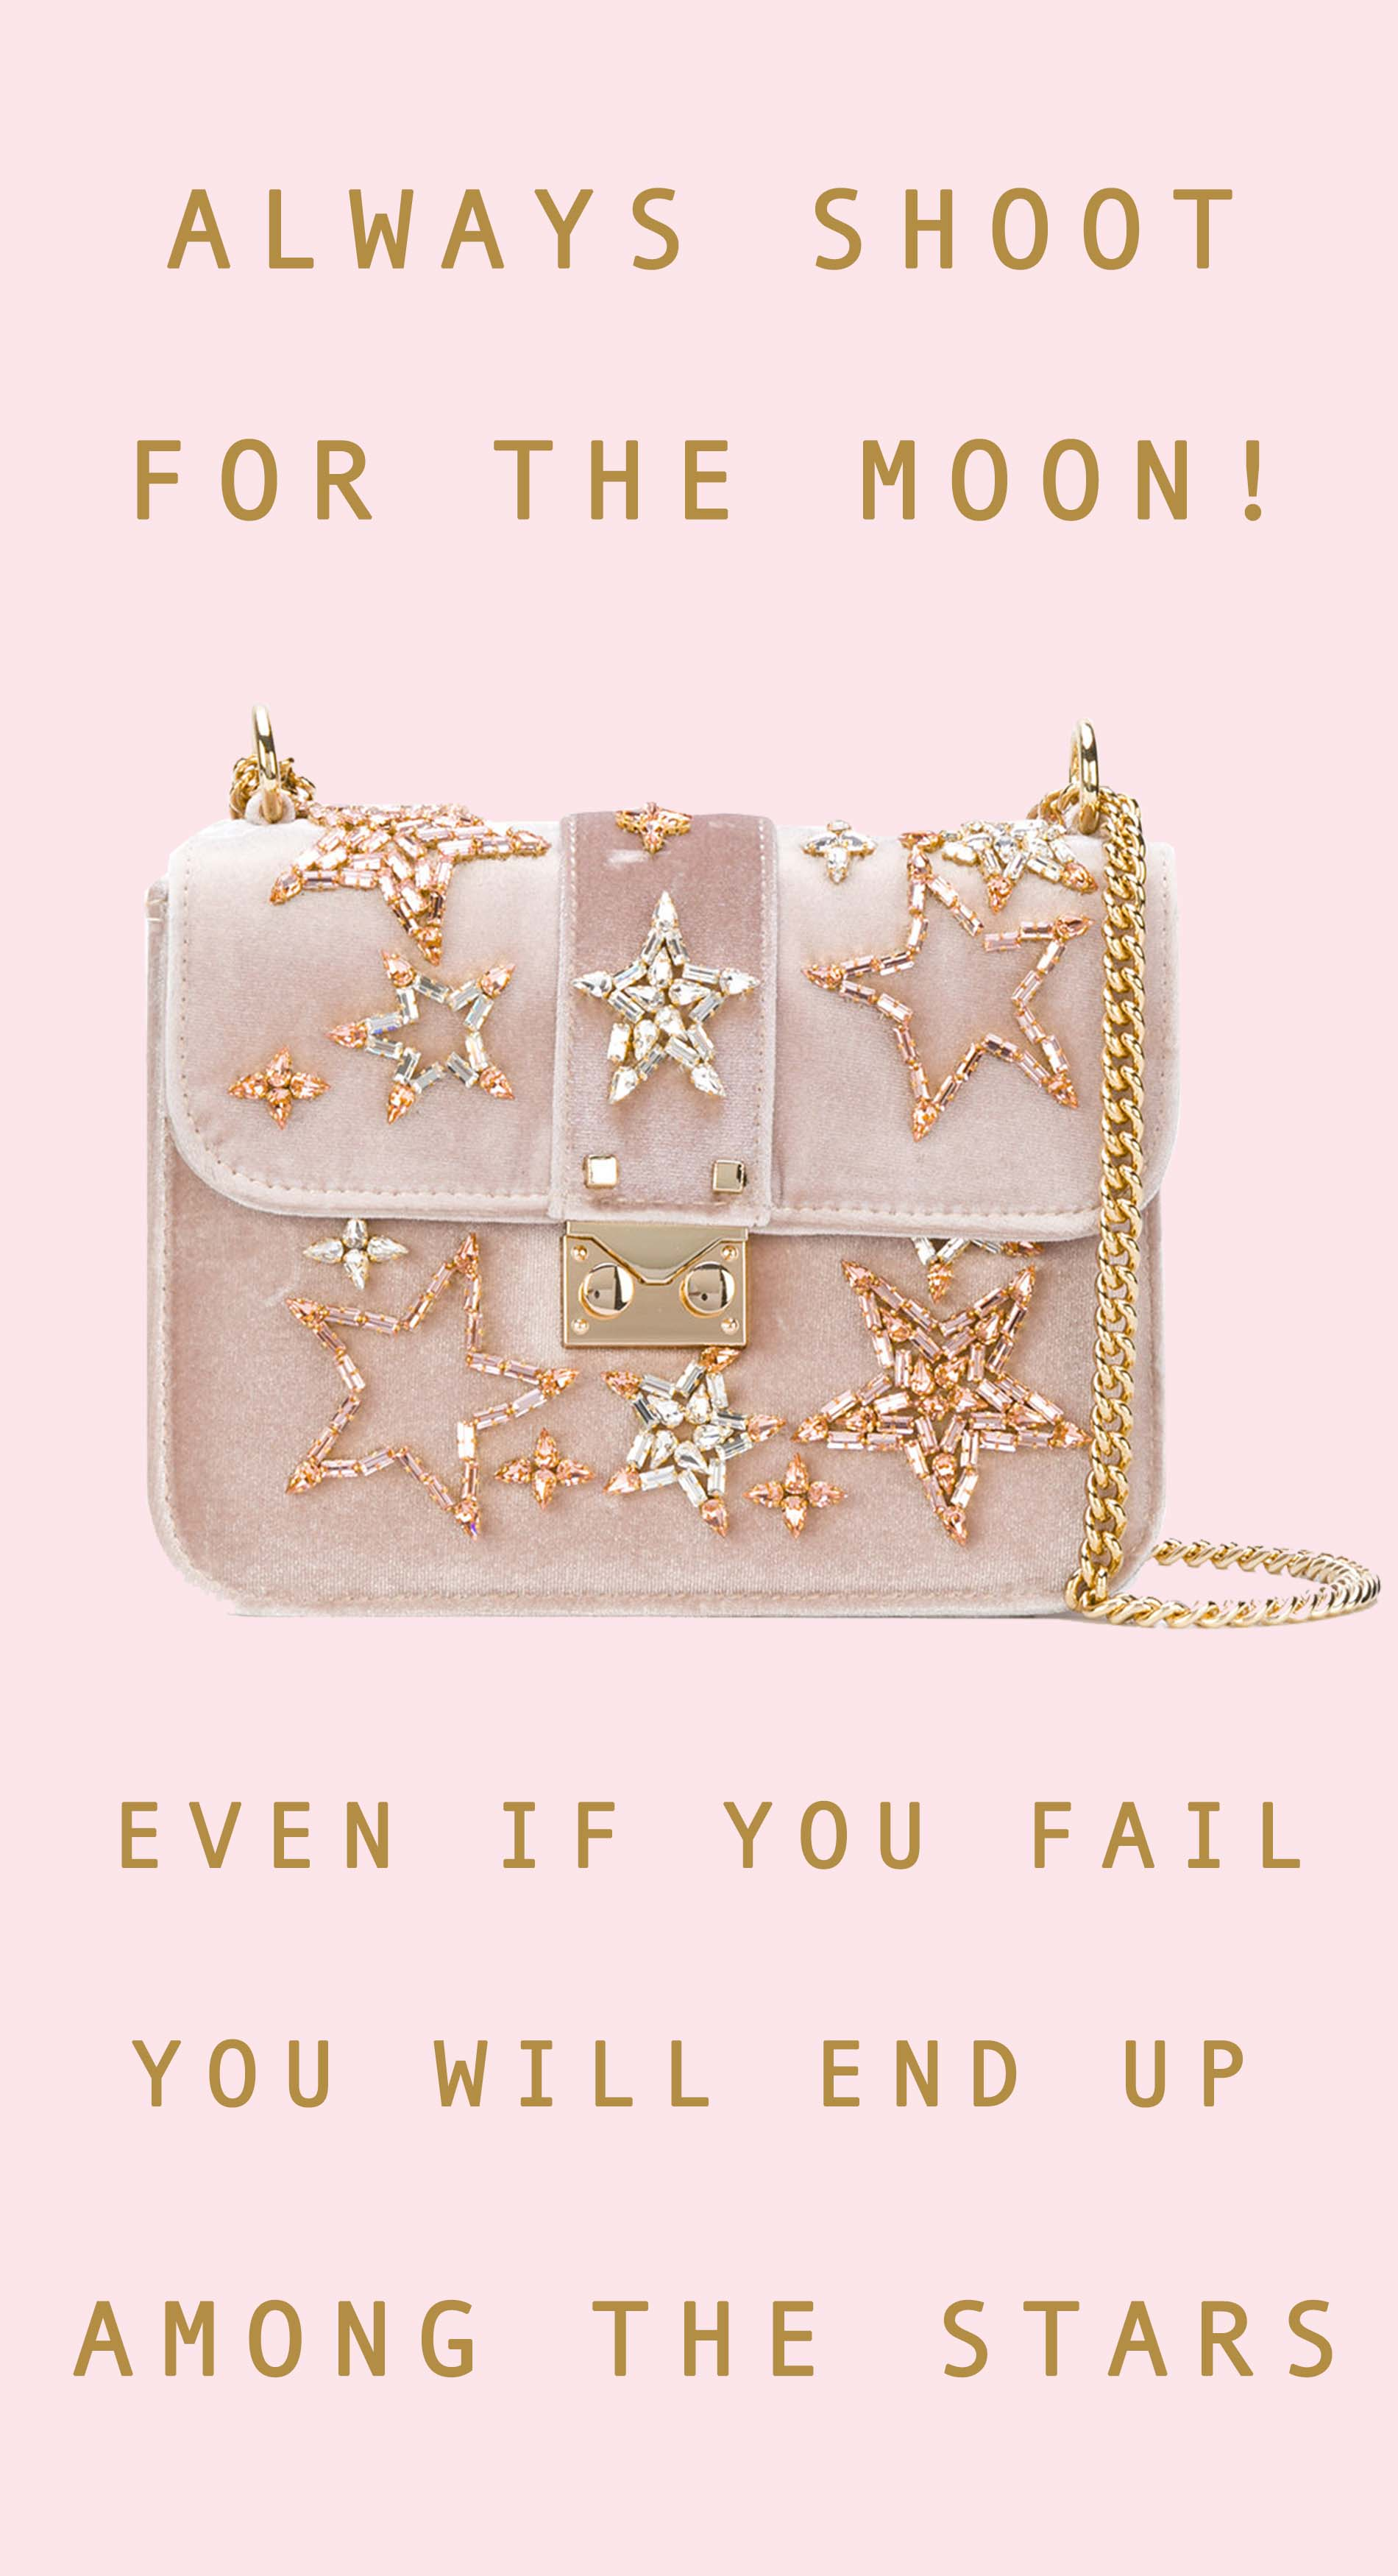 Live Gold Quotes Classy Pink And Gold Quotes And Pink Bags  Brunette From Wall Street